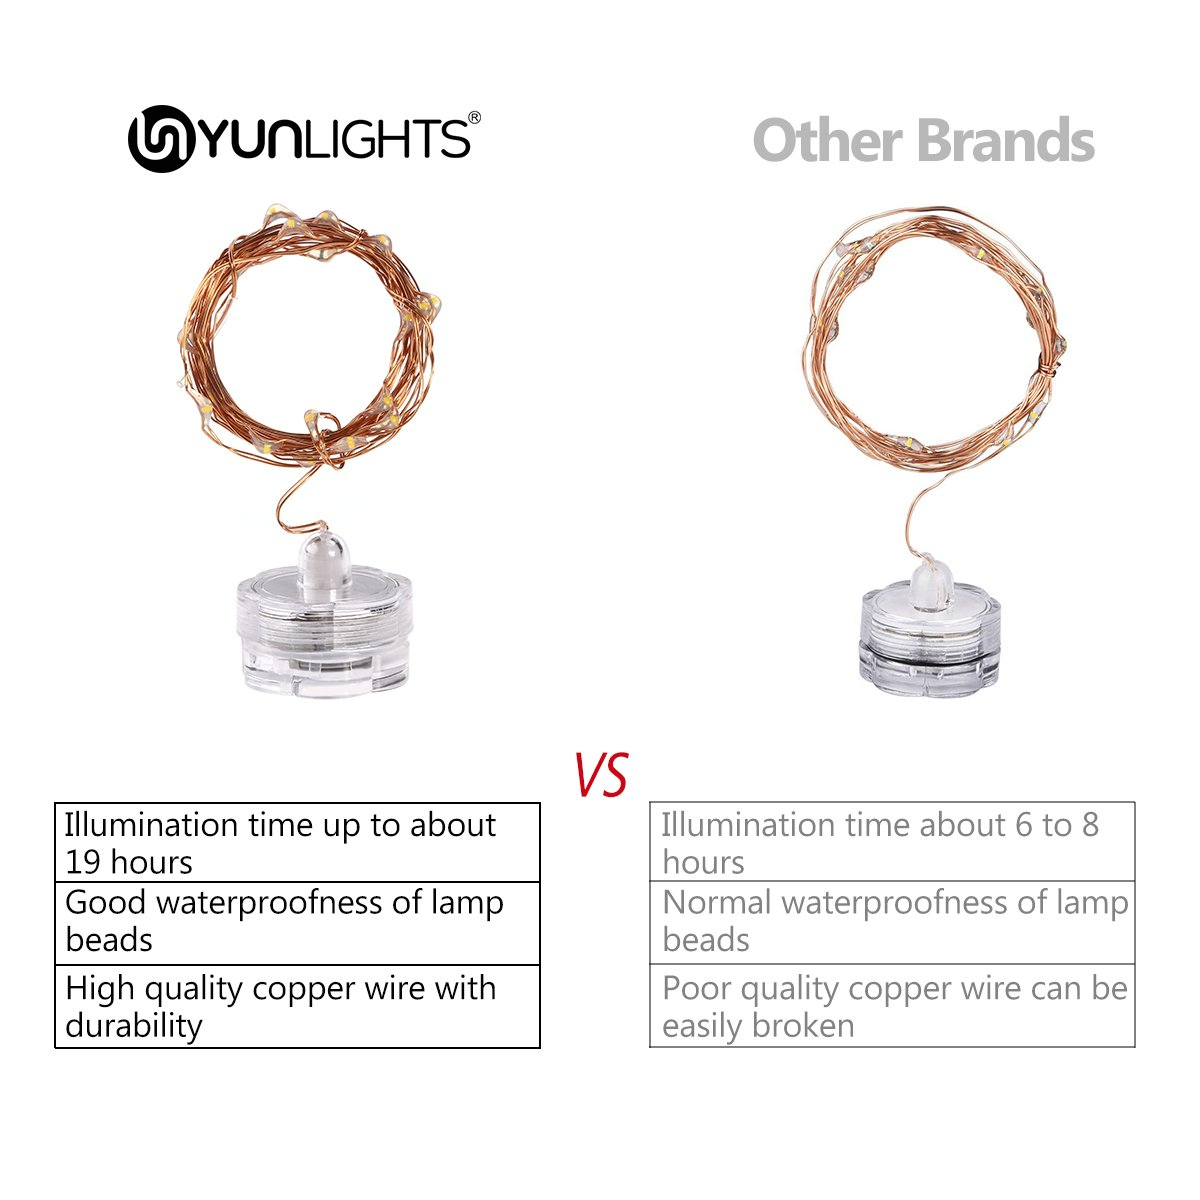 LED Starry String Lights, 8PCS 6.5foot Warm White Copper Fairy Lights with 20 Micro LEDs, Waterproof, Battery Operated, for Wedding Parties Table Decoration by YUNLIGHTS (Image #2)